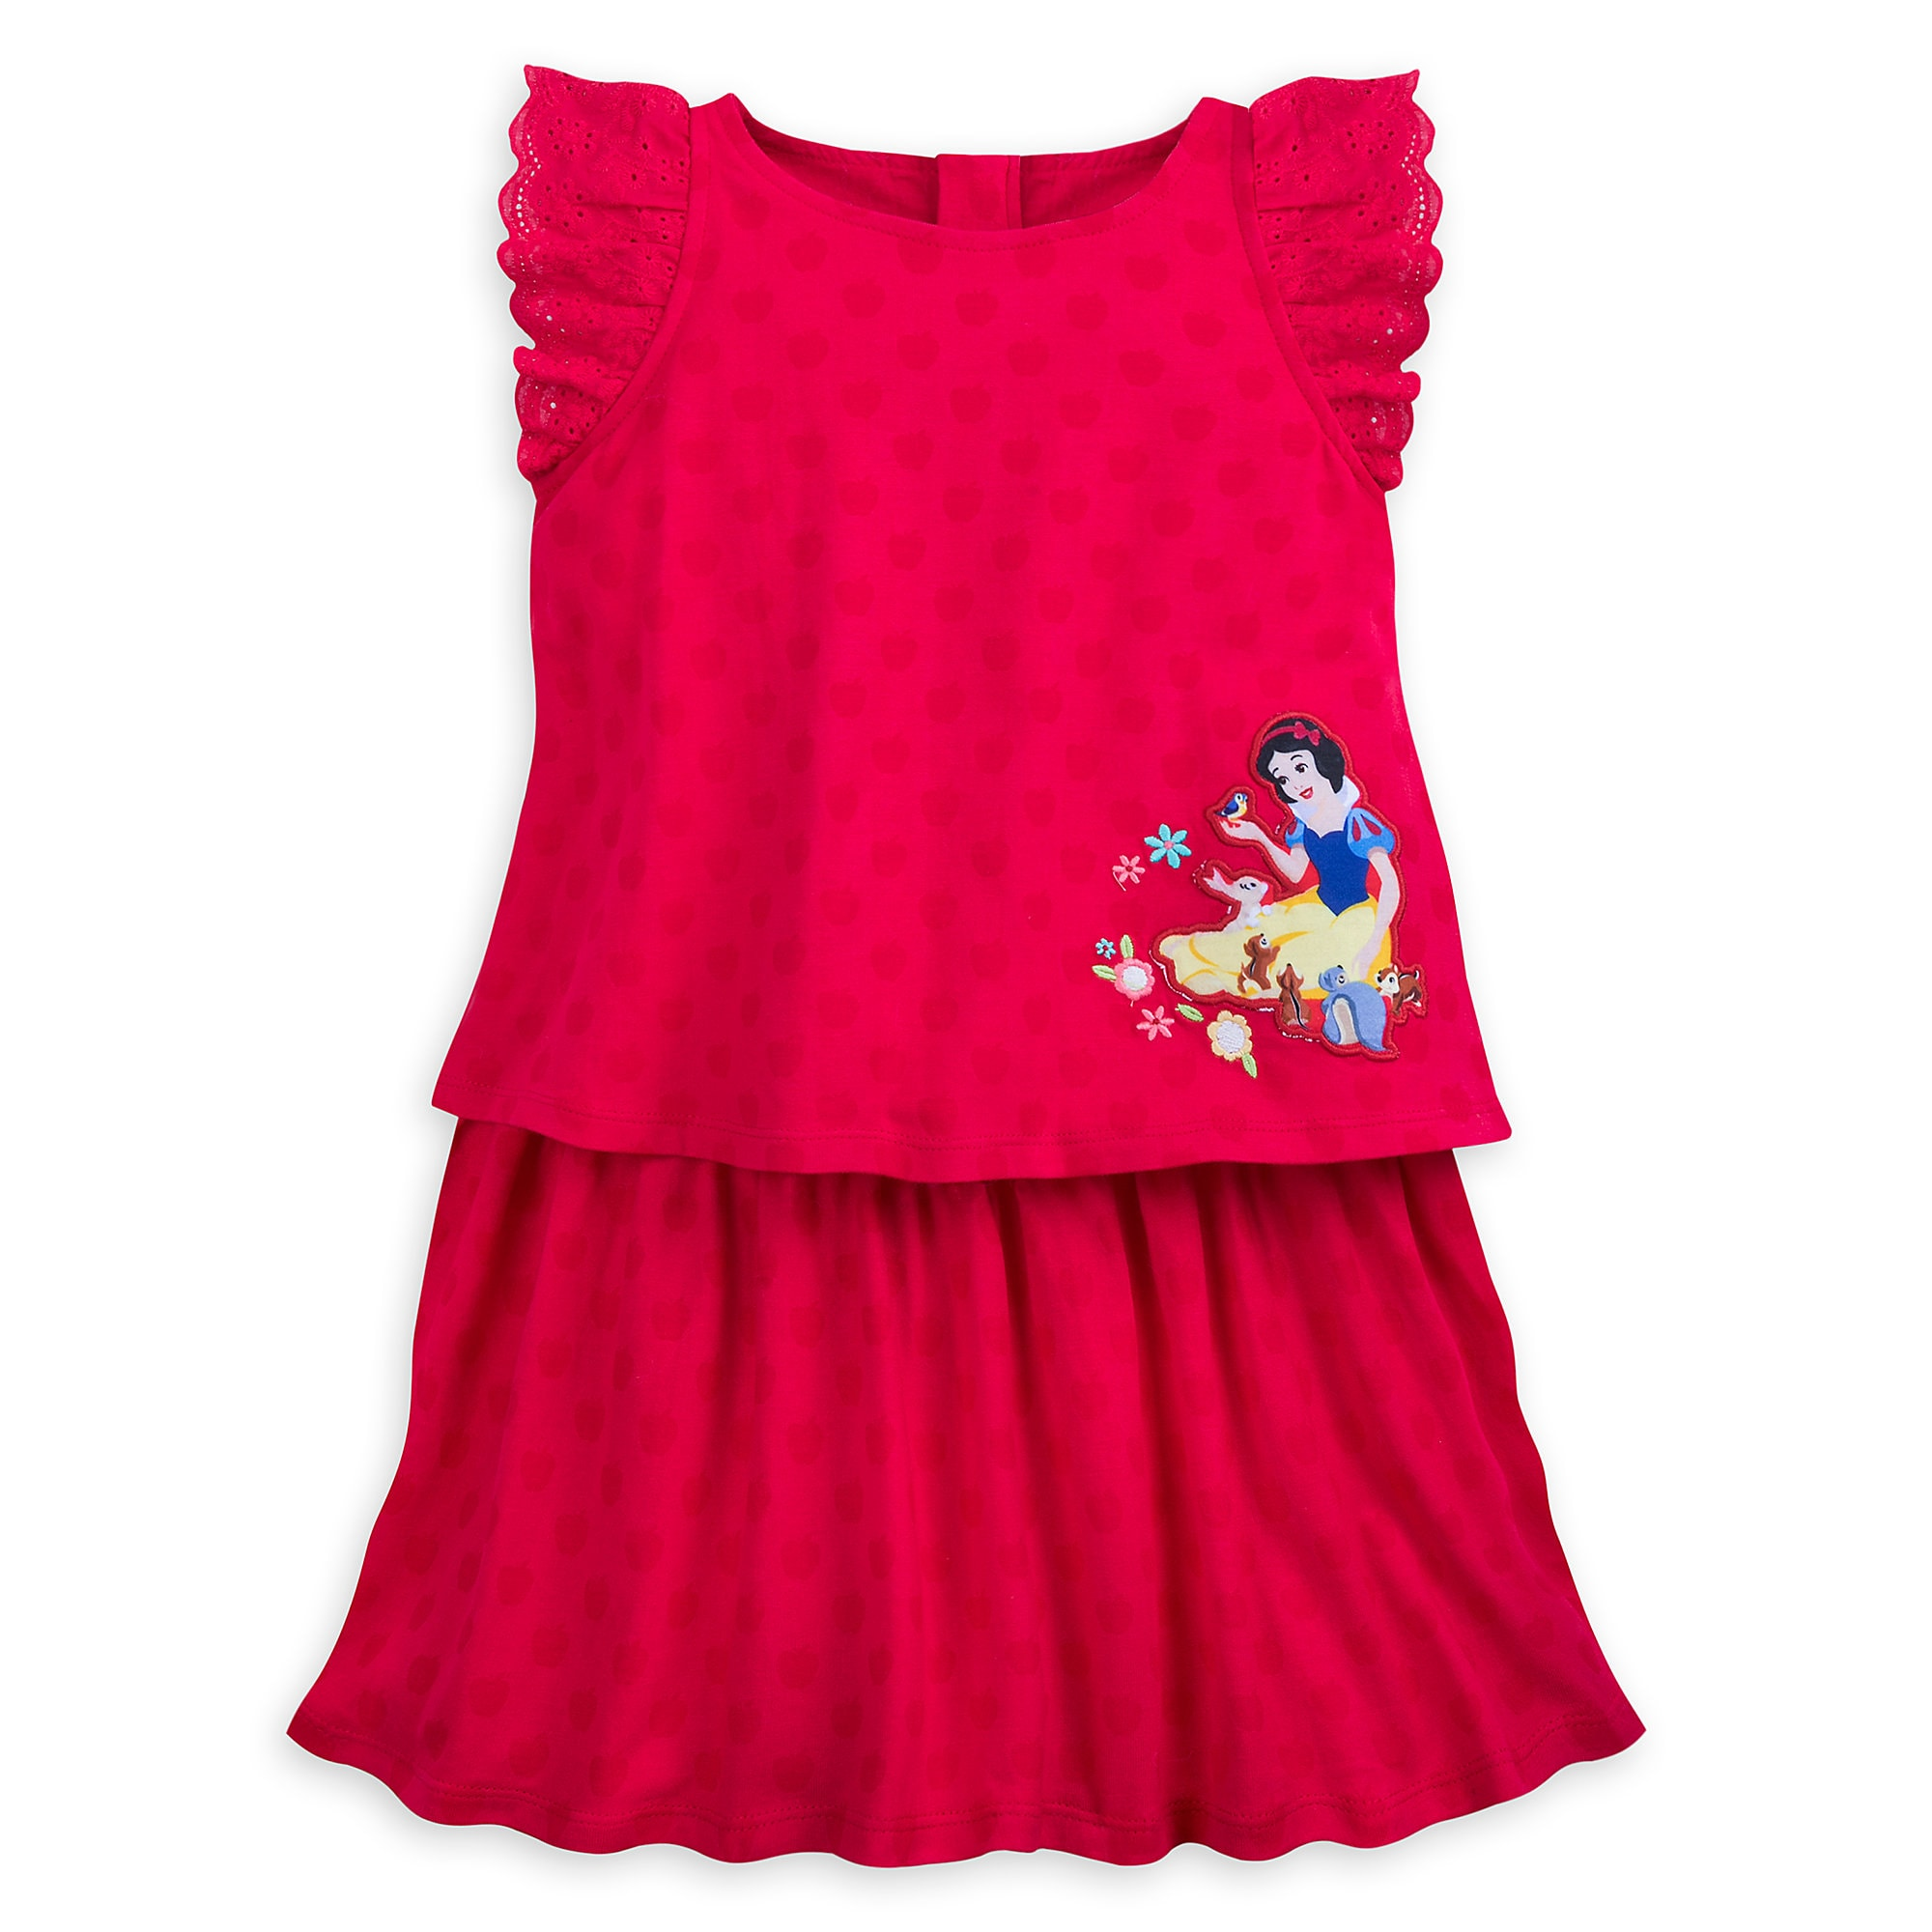 Snow White Knit Dress for Girls